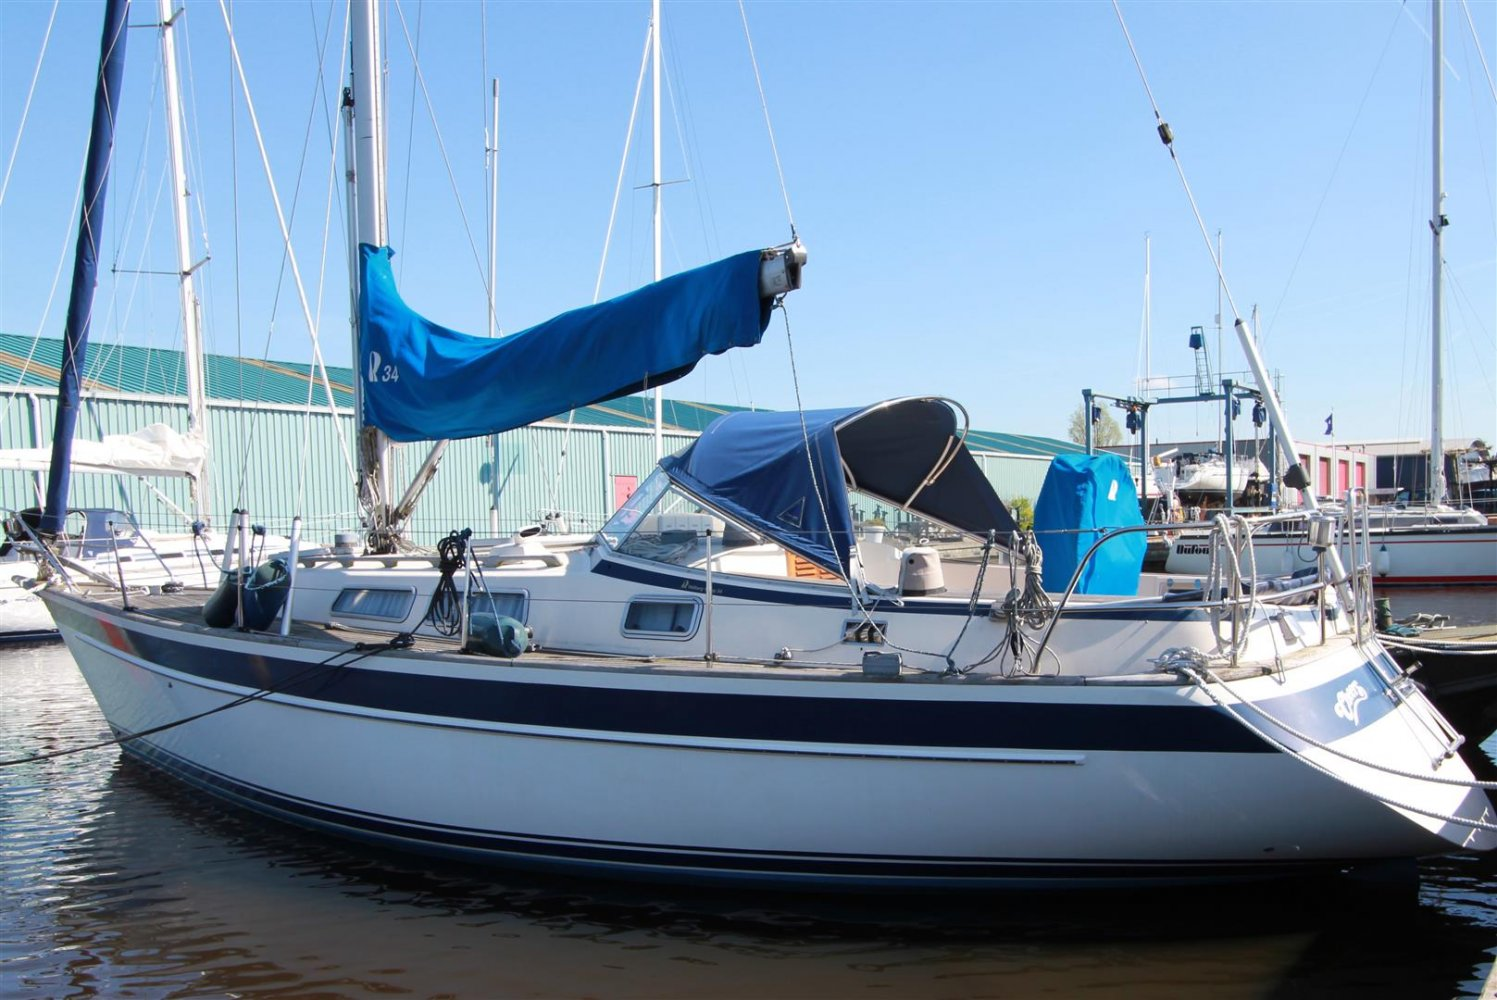 Hallberg Rassy 34 sailboat for sale | White Whale Yachtbrokers